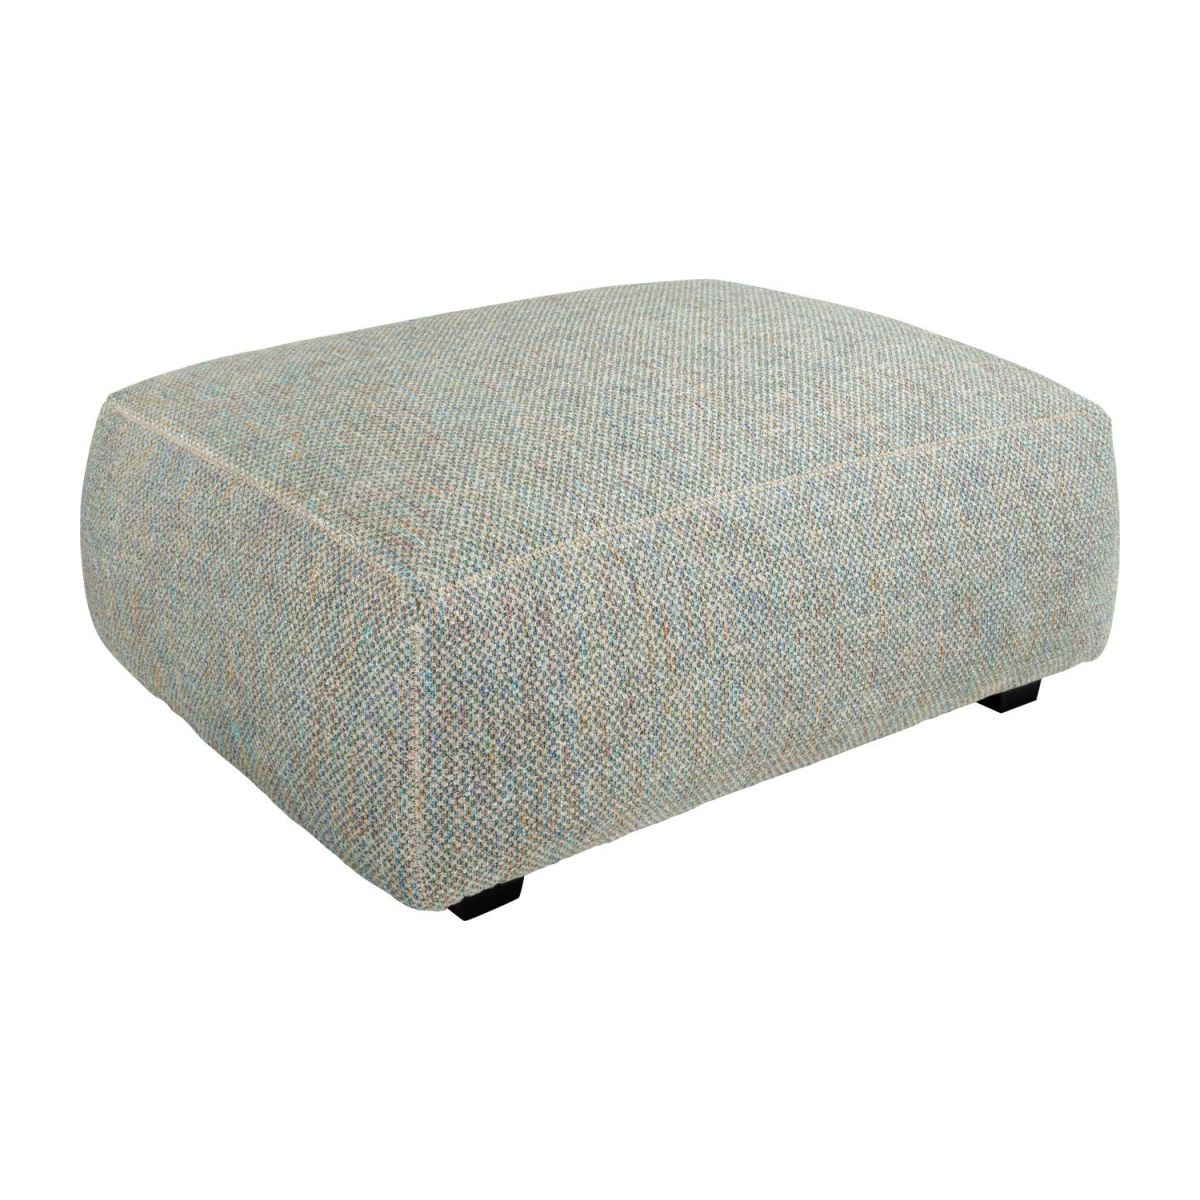 Footstool in Bellagio fabric, organic green n°1